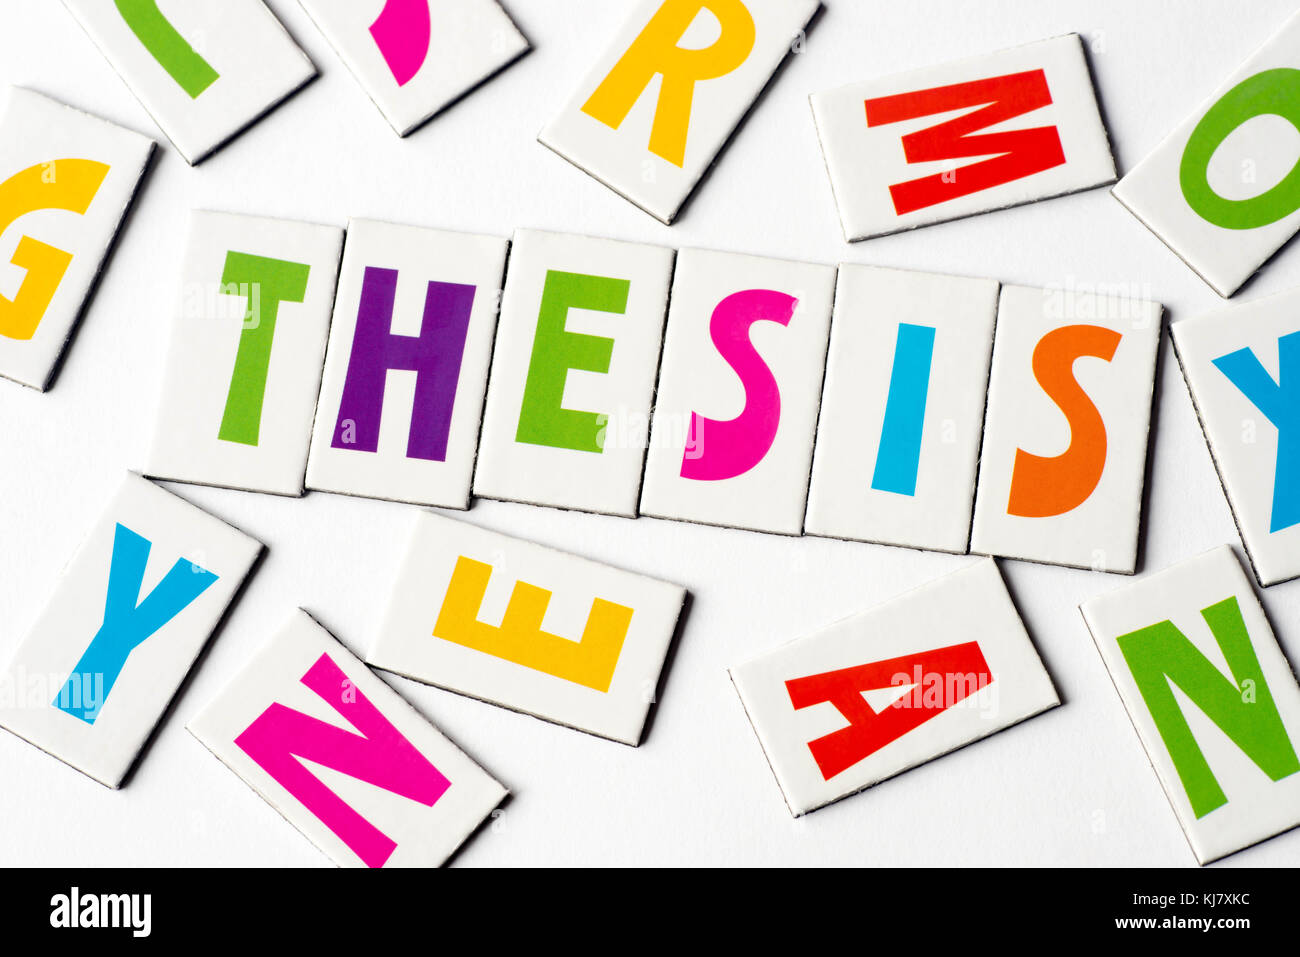 Word Thesis Made Of Colorful Letters On White Background Stock Photo - Alamy